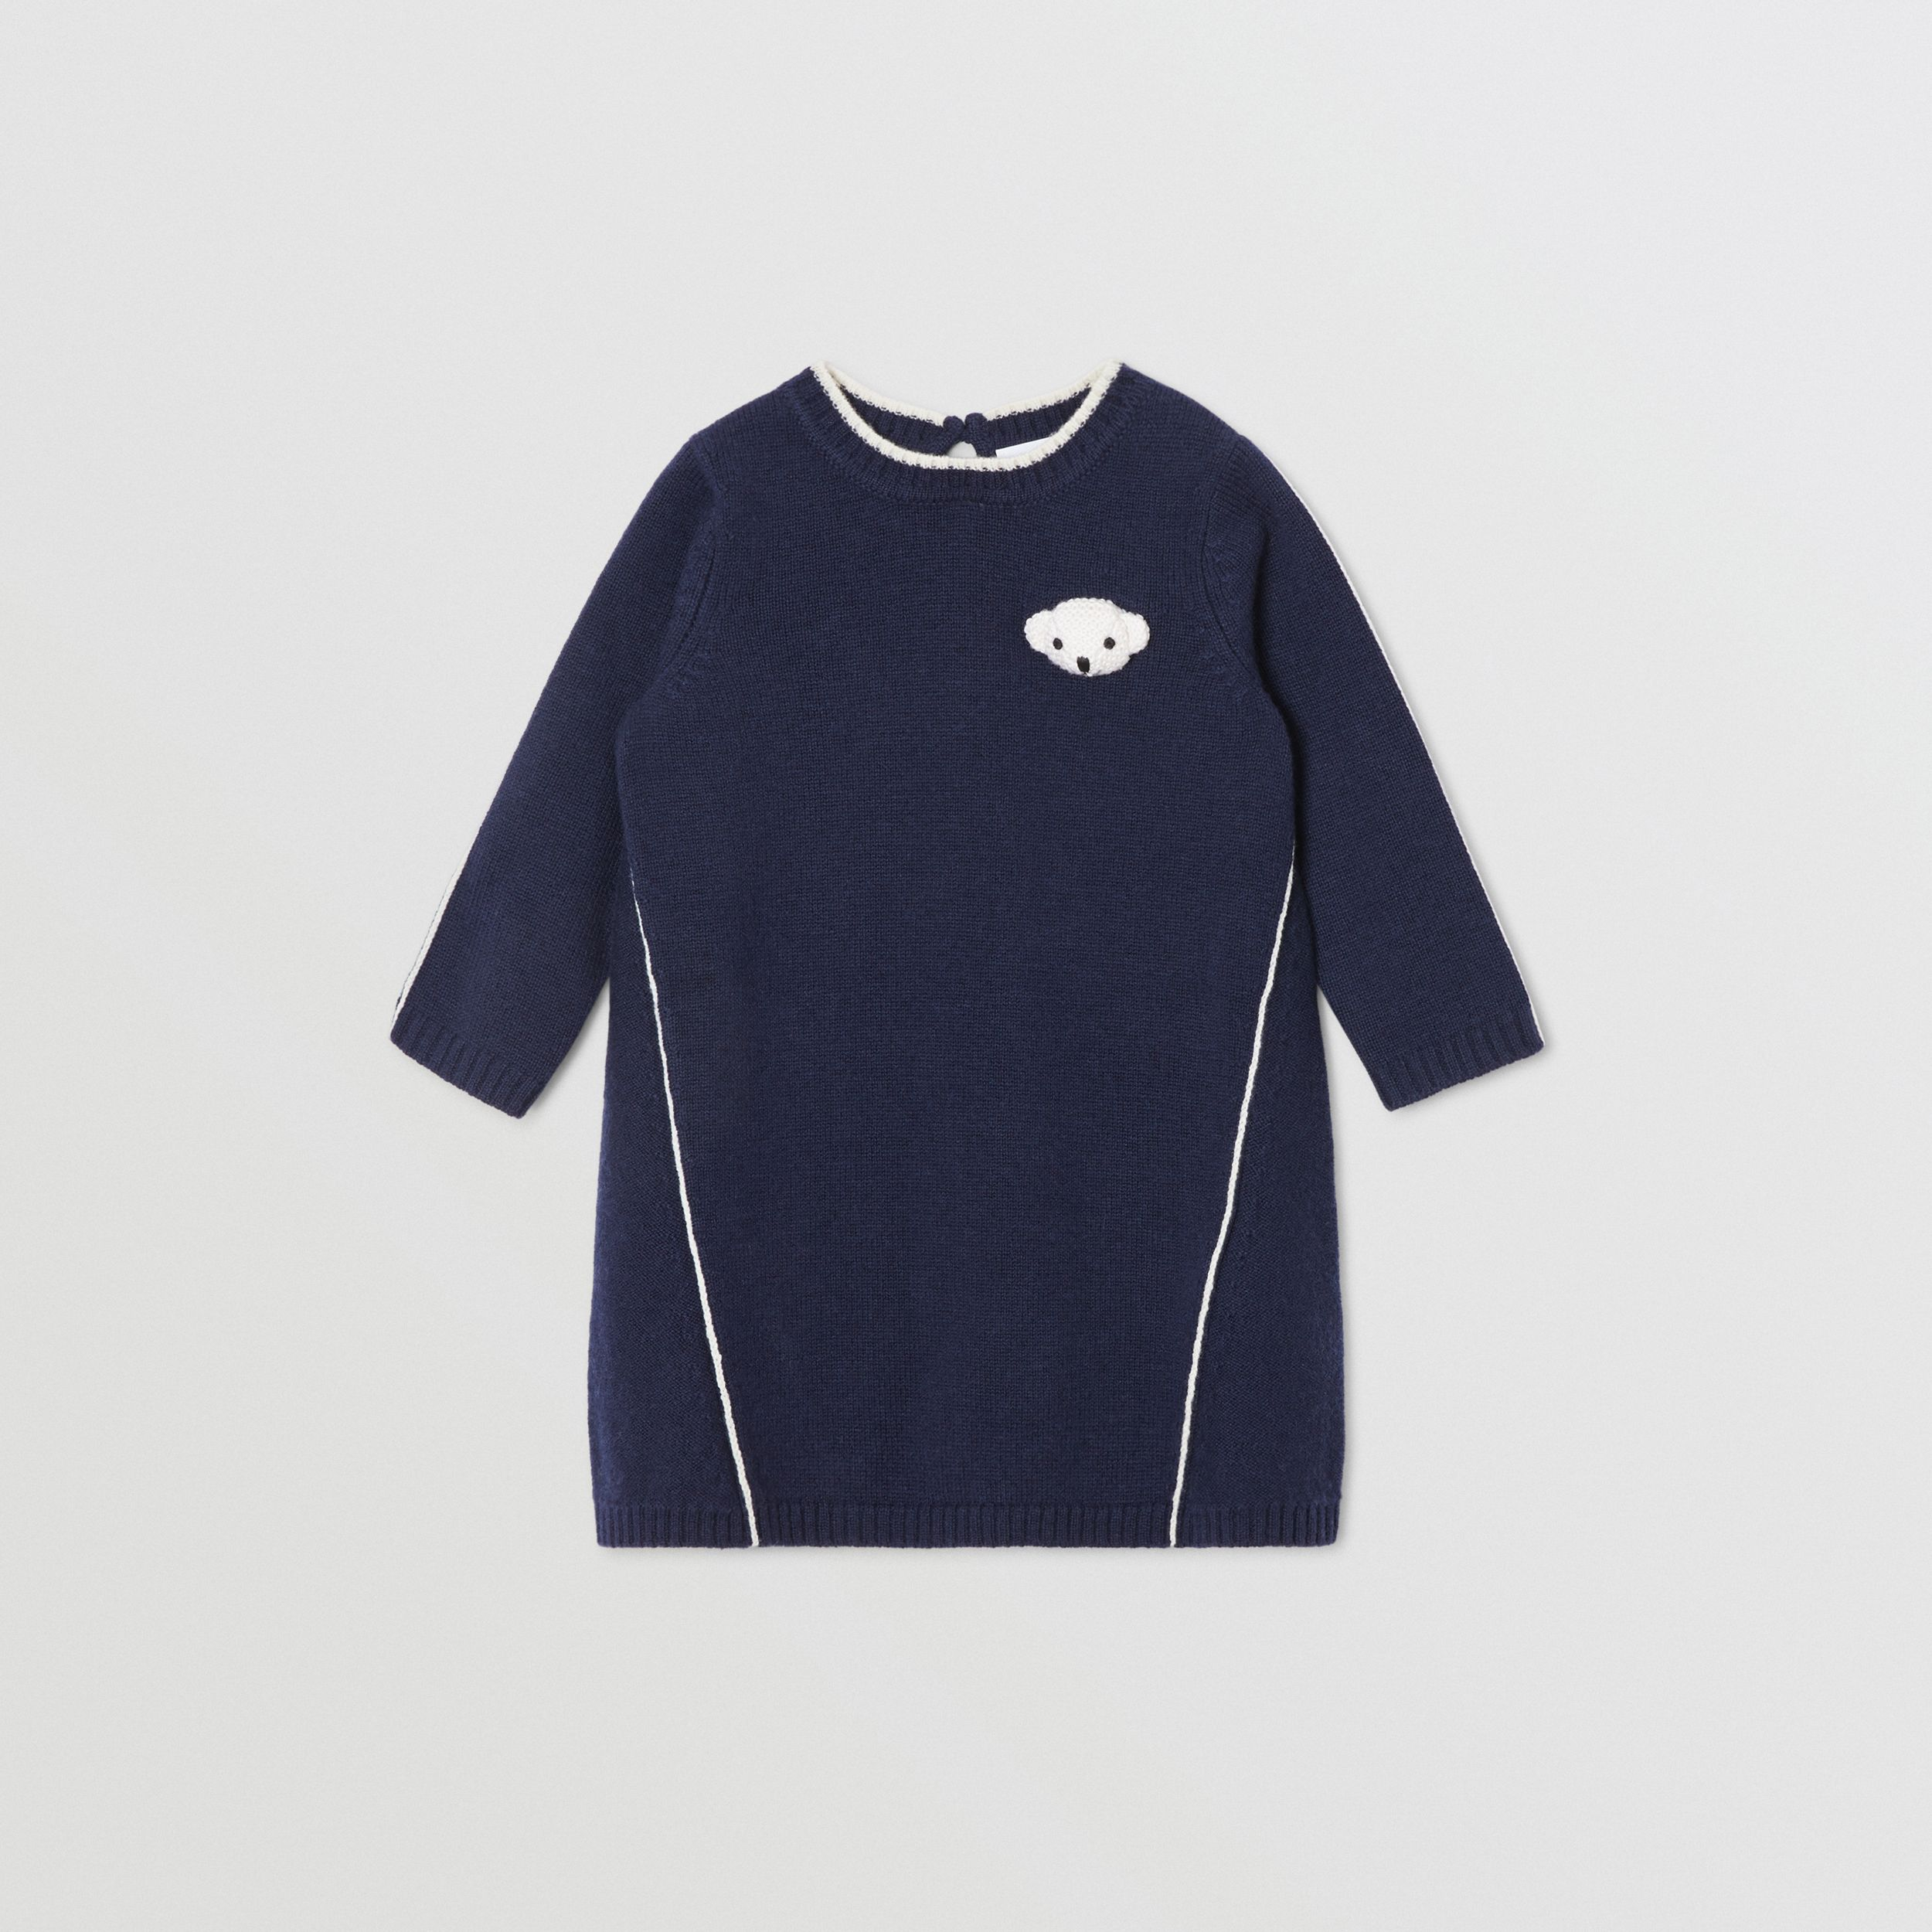 Thomas Bear Detail Wool Cashmere Sweater Dress in Navy - Children | Burberry - 1